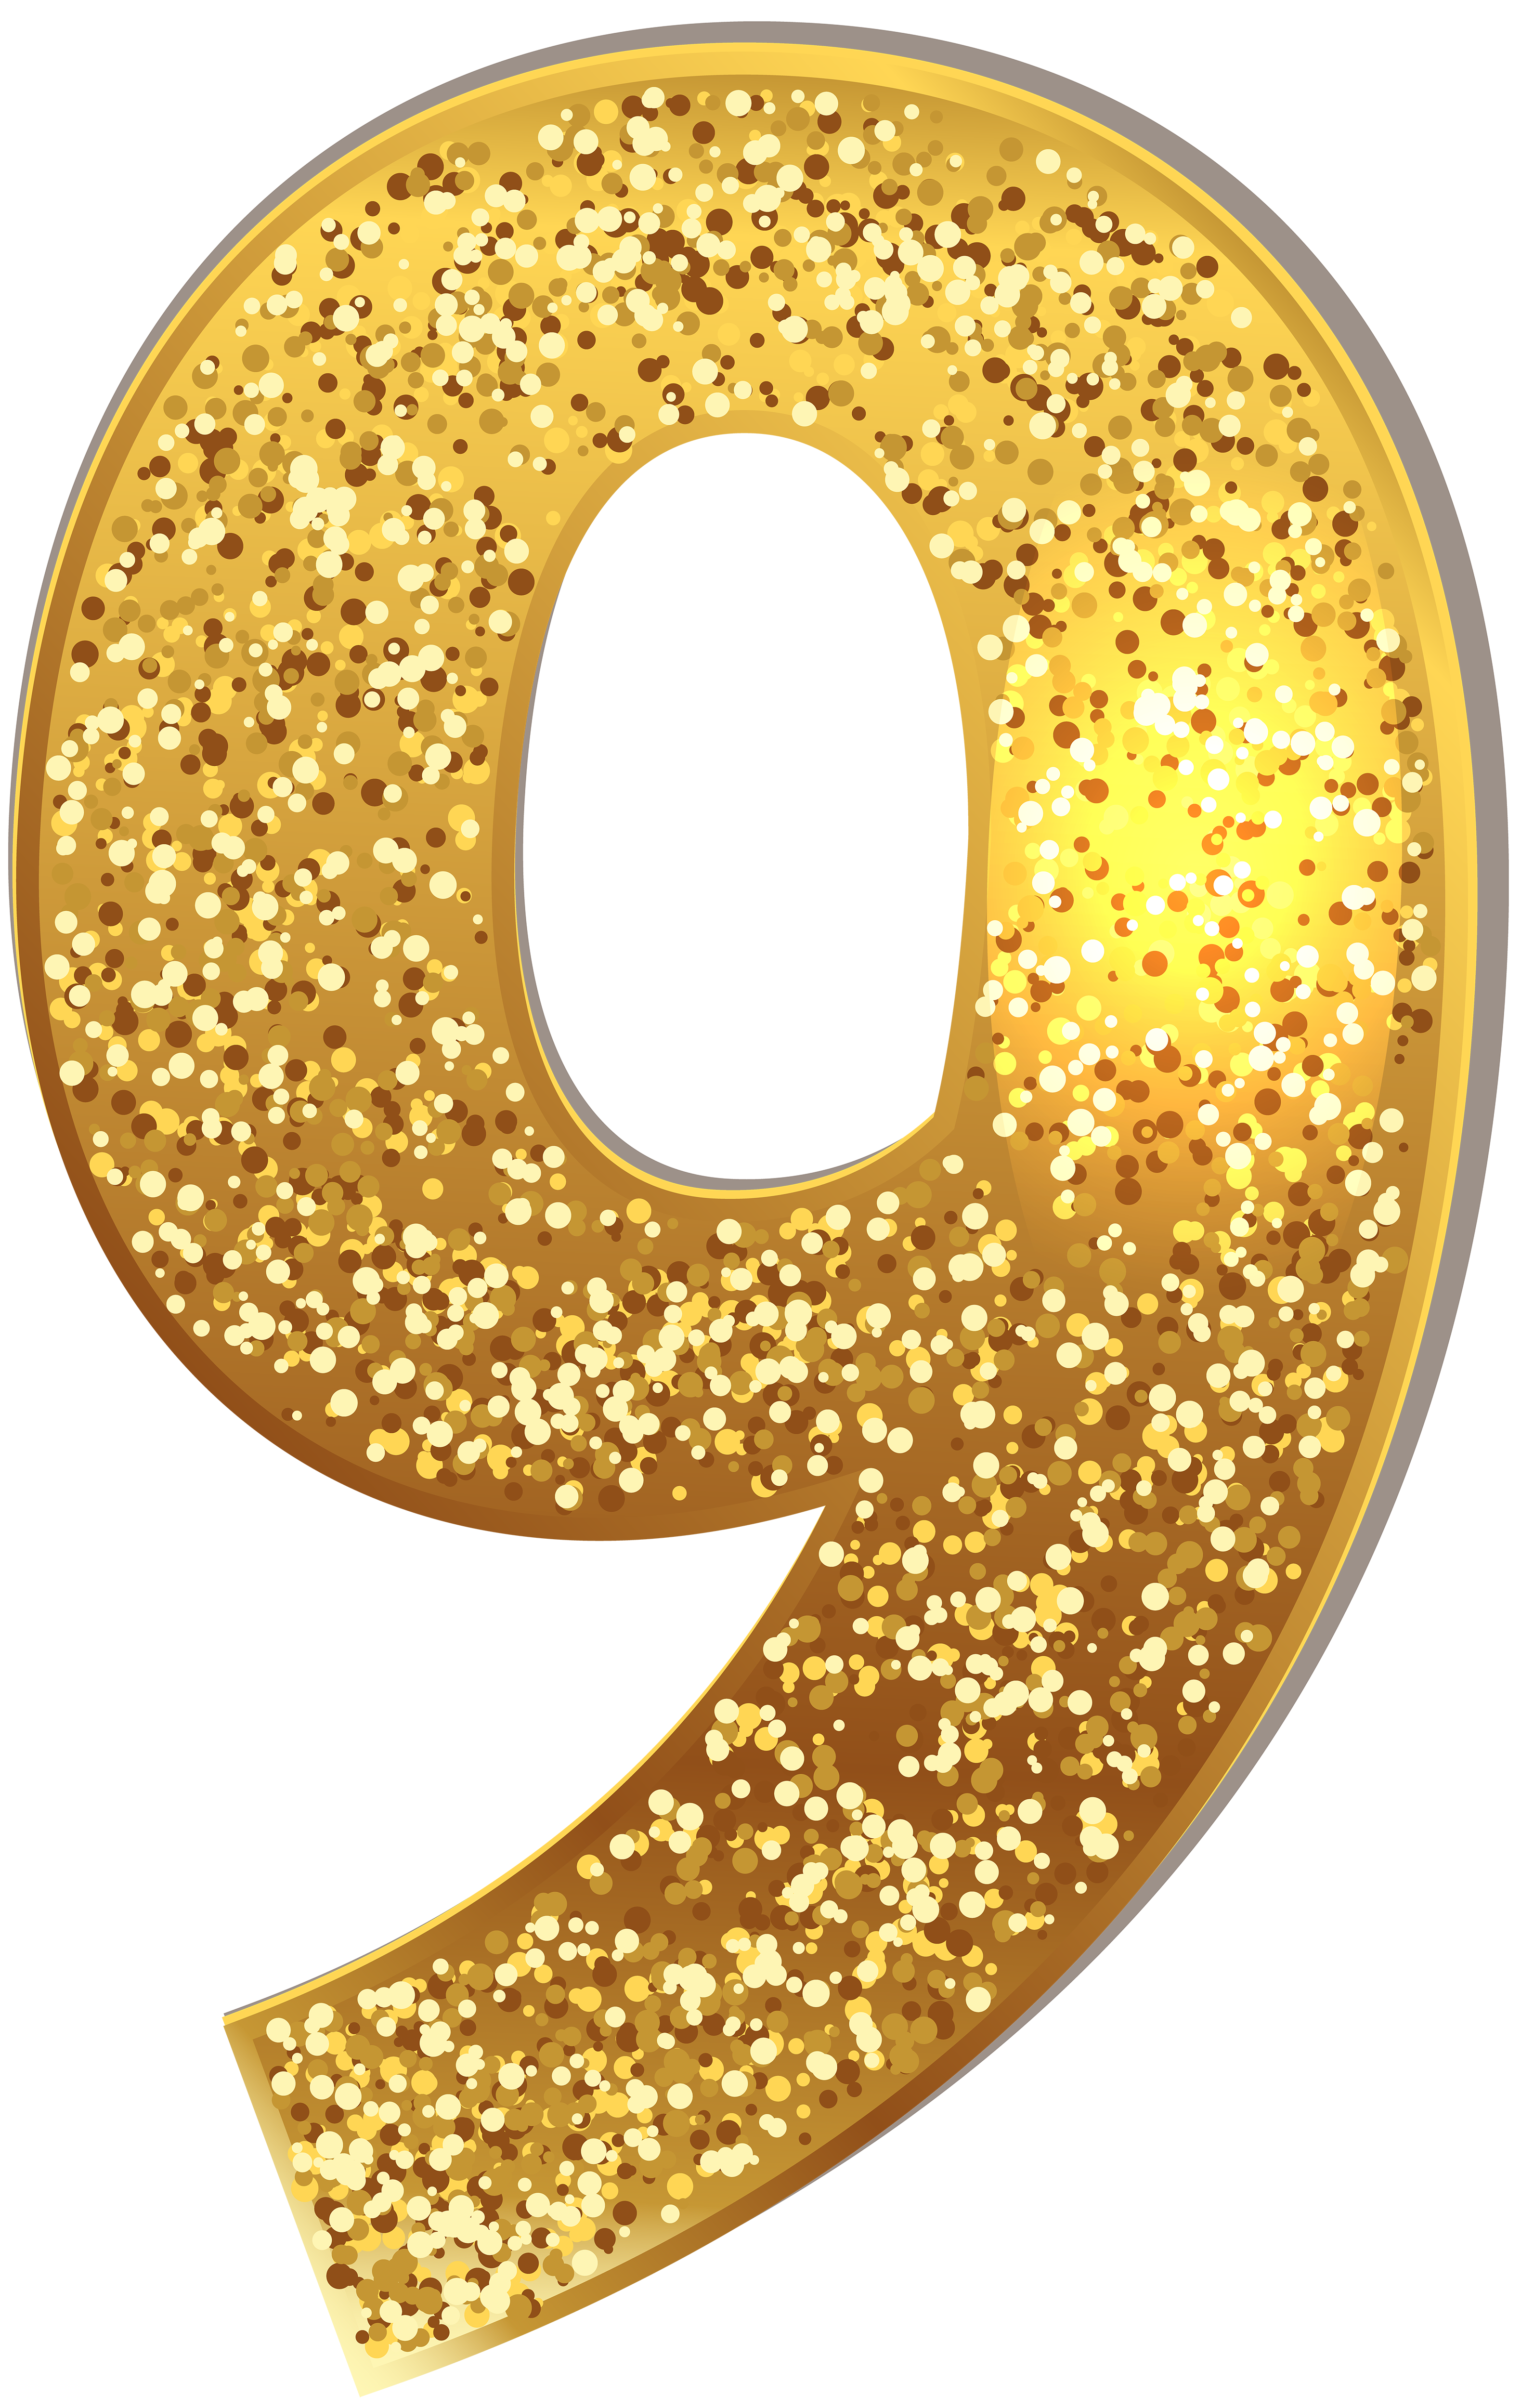 Number Nine Gold Shining Png Clip Art Image Gallery Yopriceville High Quality Images And Transparent Png Free Clipart Clip Art Free Clip Art Art Images